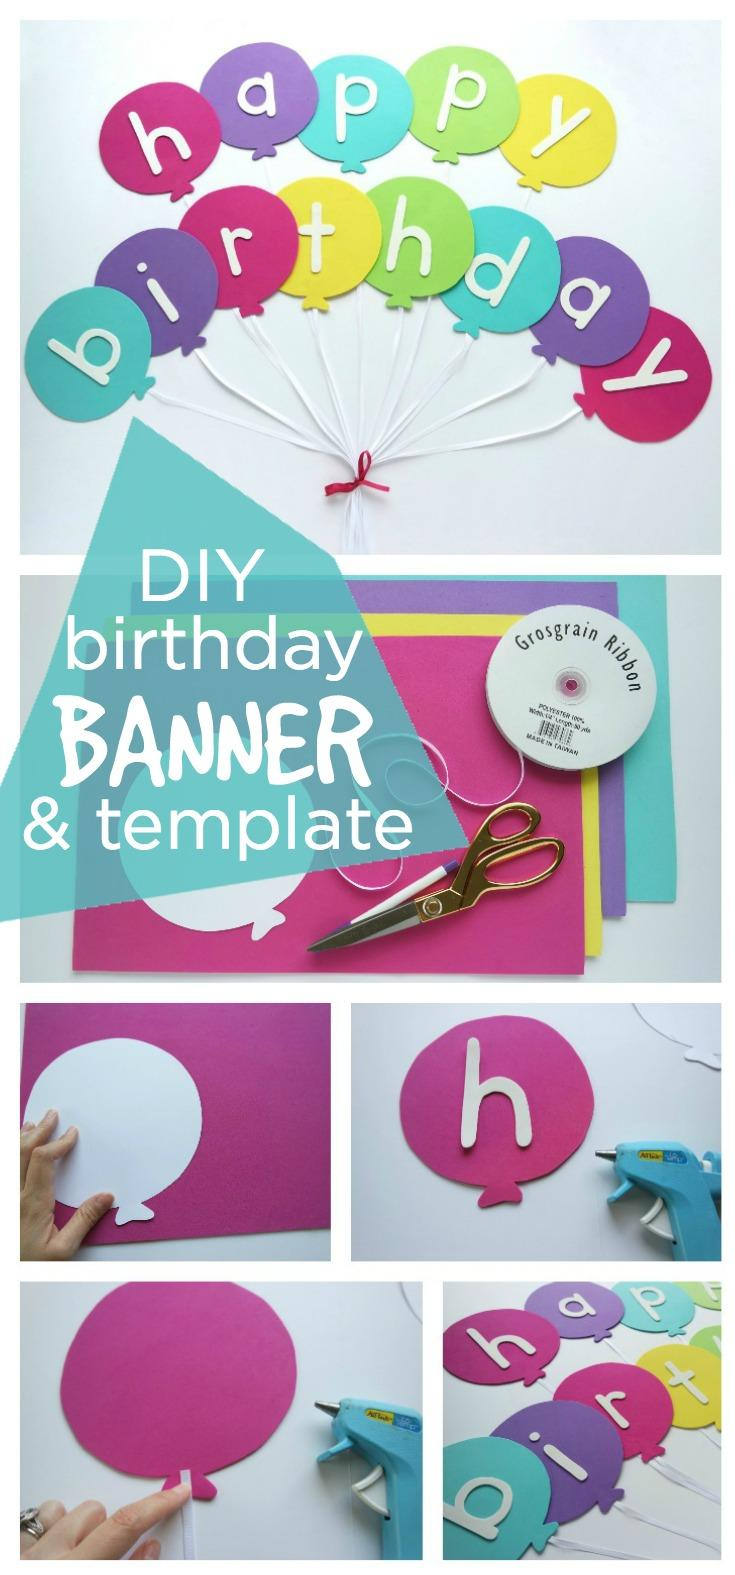 16 Happy Birthday Banner DIY Template